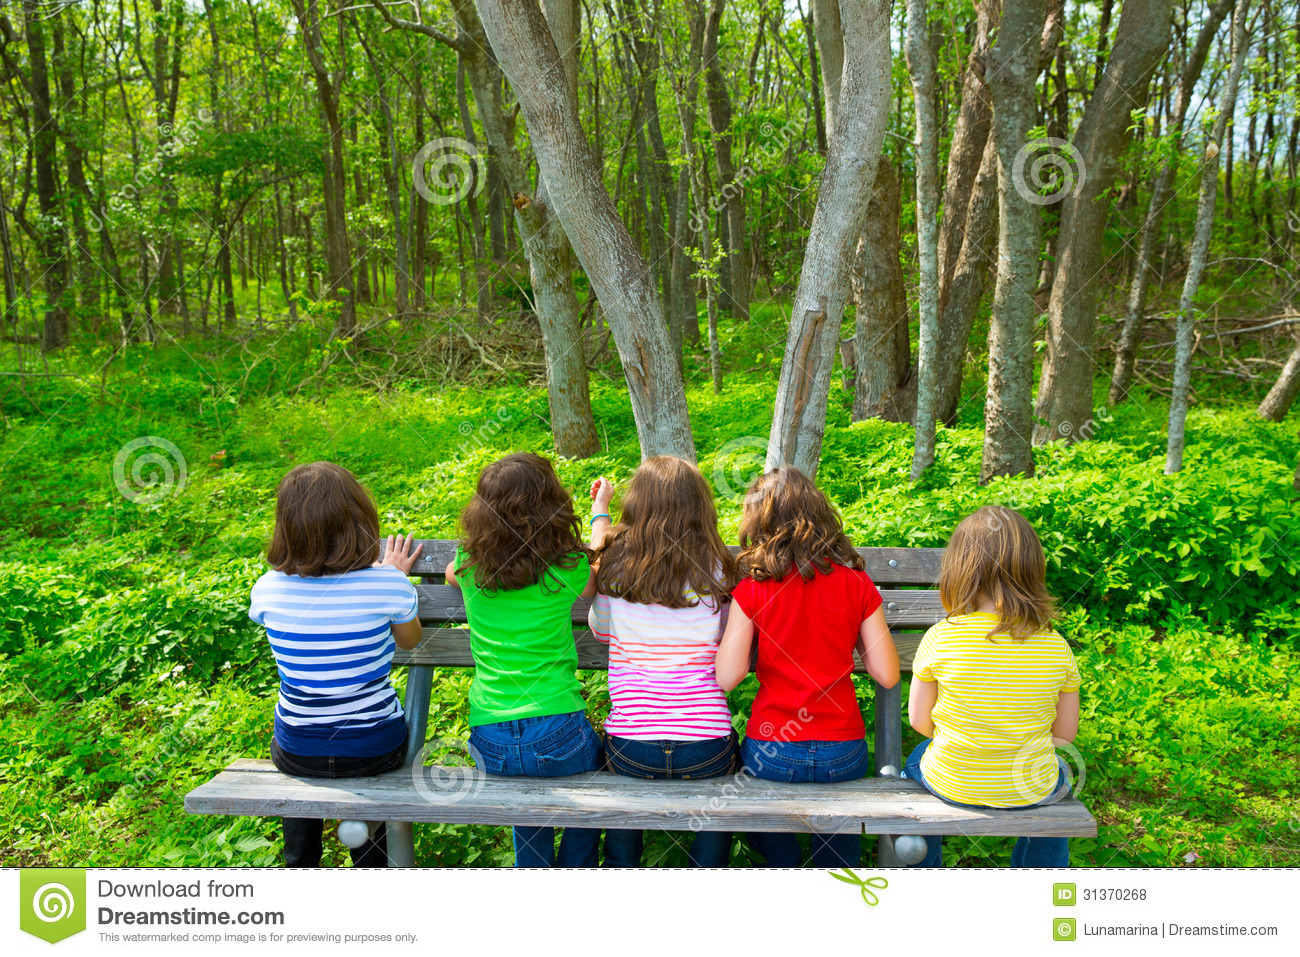 Children Girls Sitting On Park Bench Looking At Forest Royalty Free Stock Photos - Image: 31370268